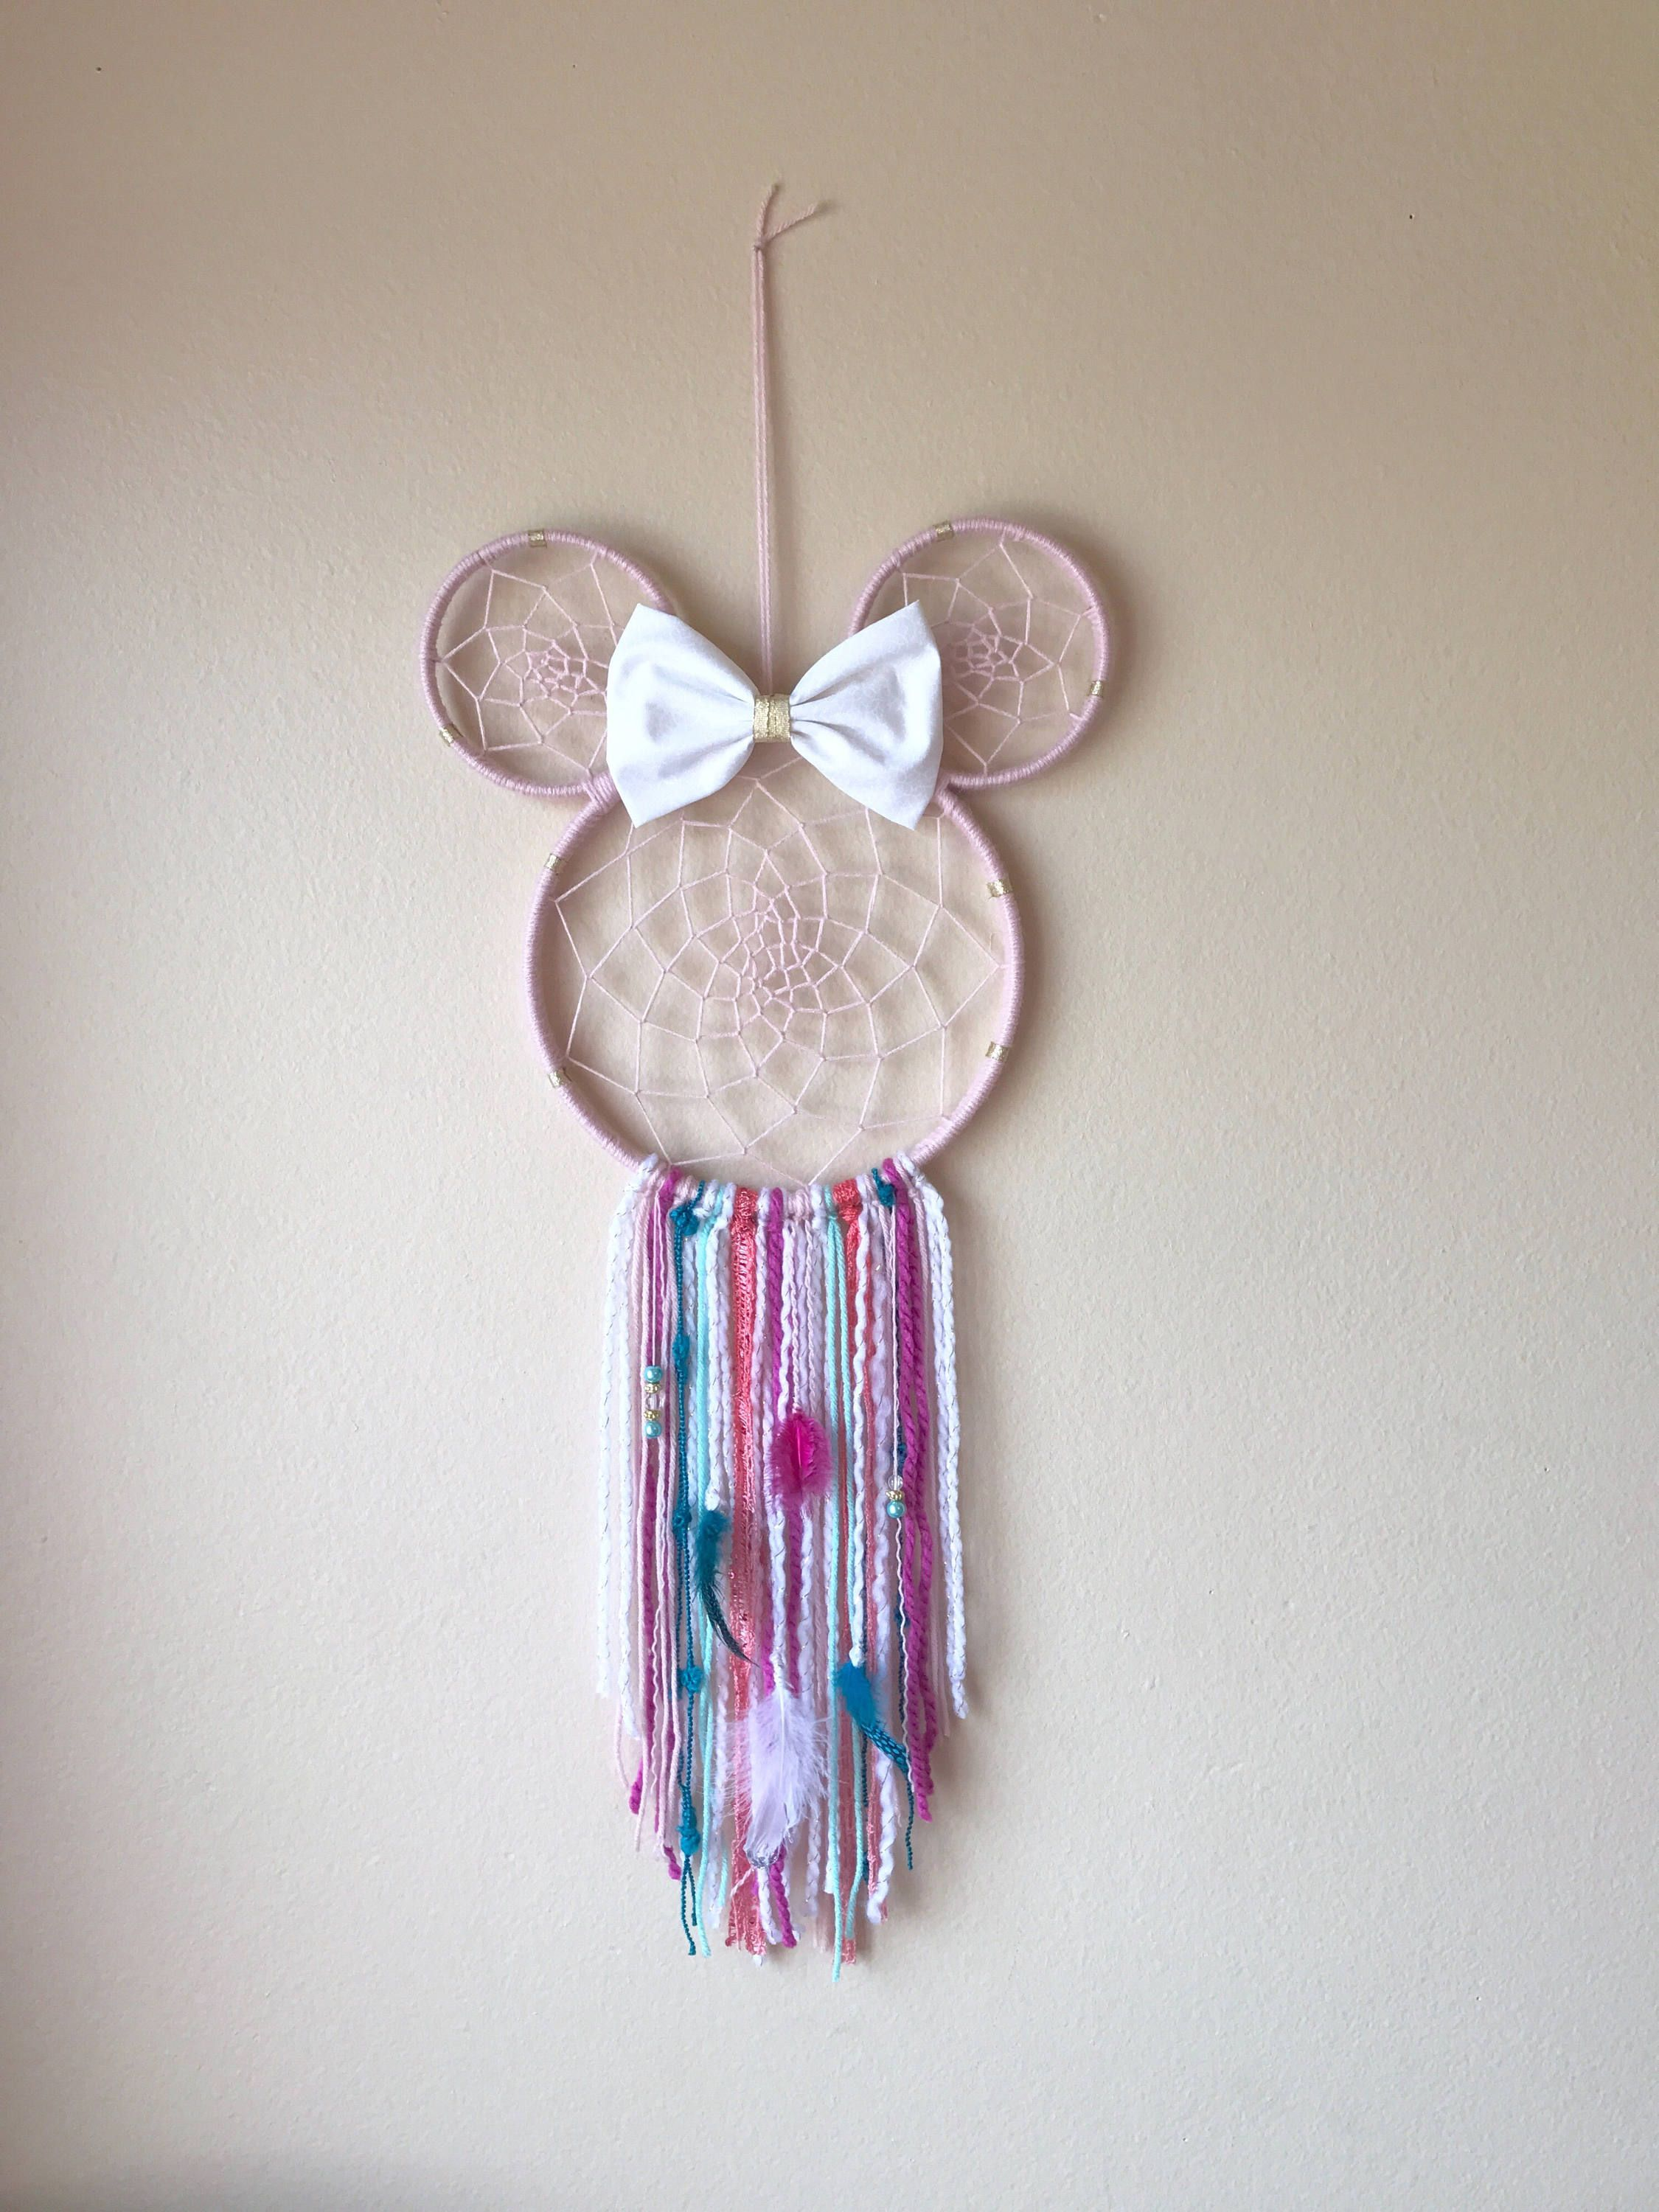 minnie dream catcher shabby chic kids room decor dream catcher pinterest dream catcher. Black Bedroom Furniture Sets. Home Design Ideas